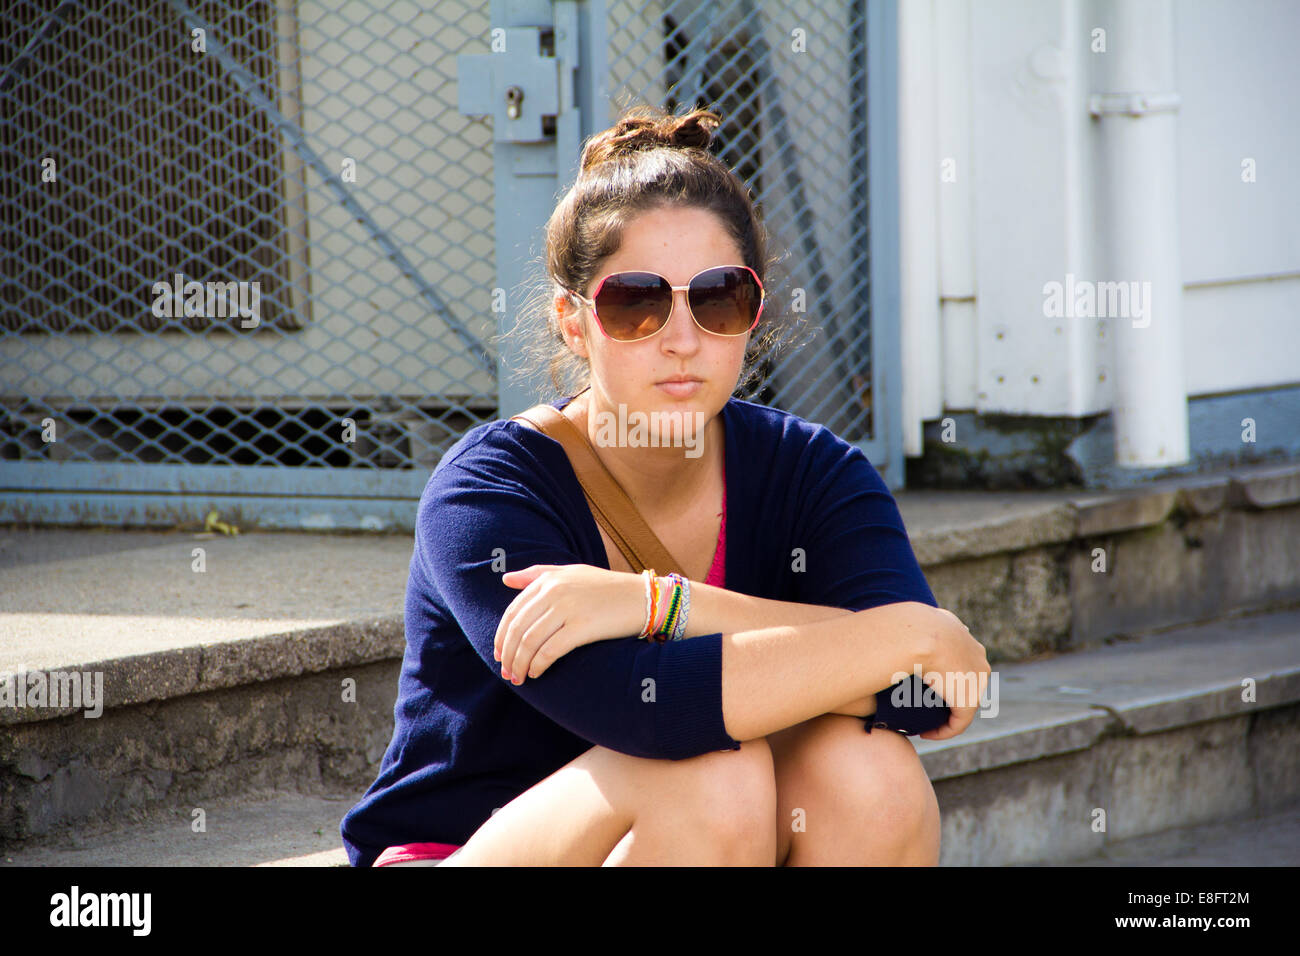 Woman wearing sunglasses sitting on a step - Stock Image